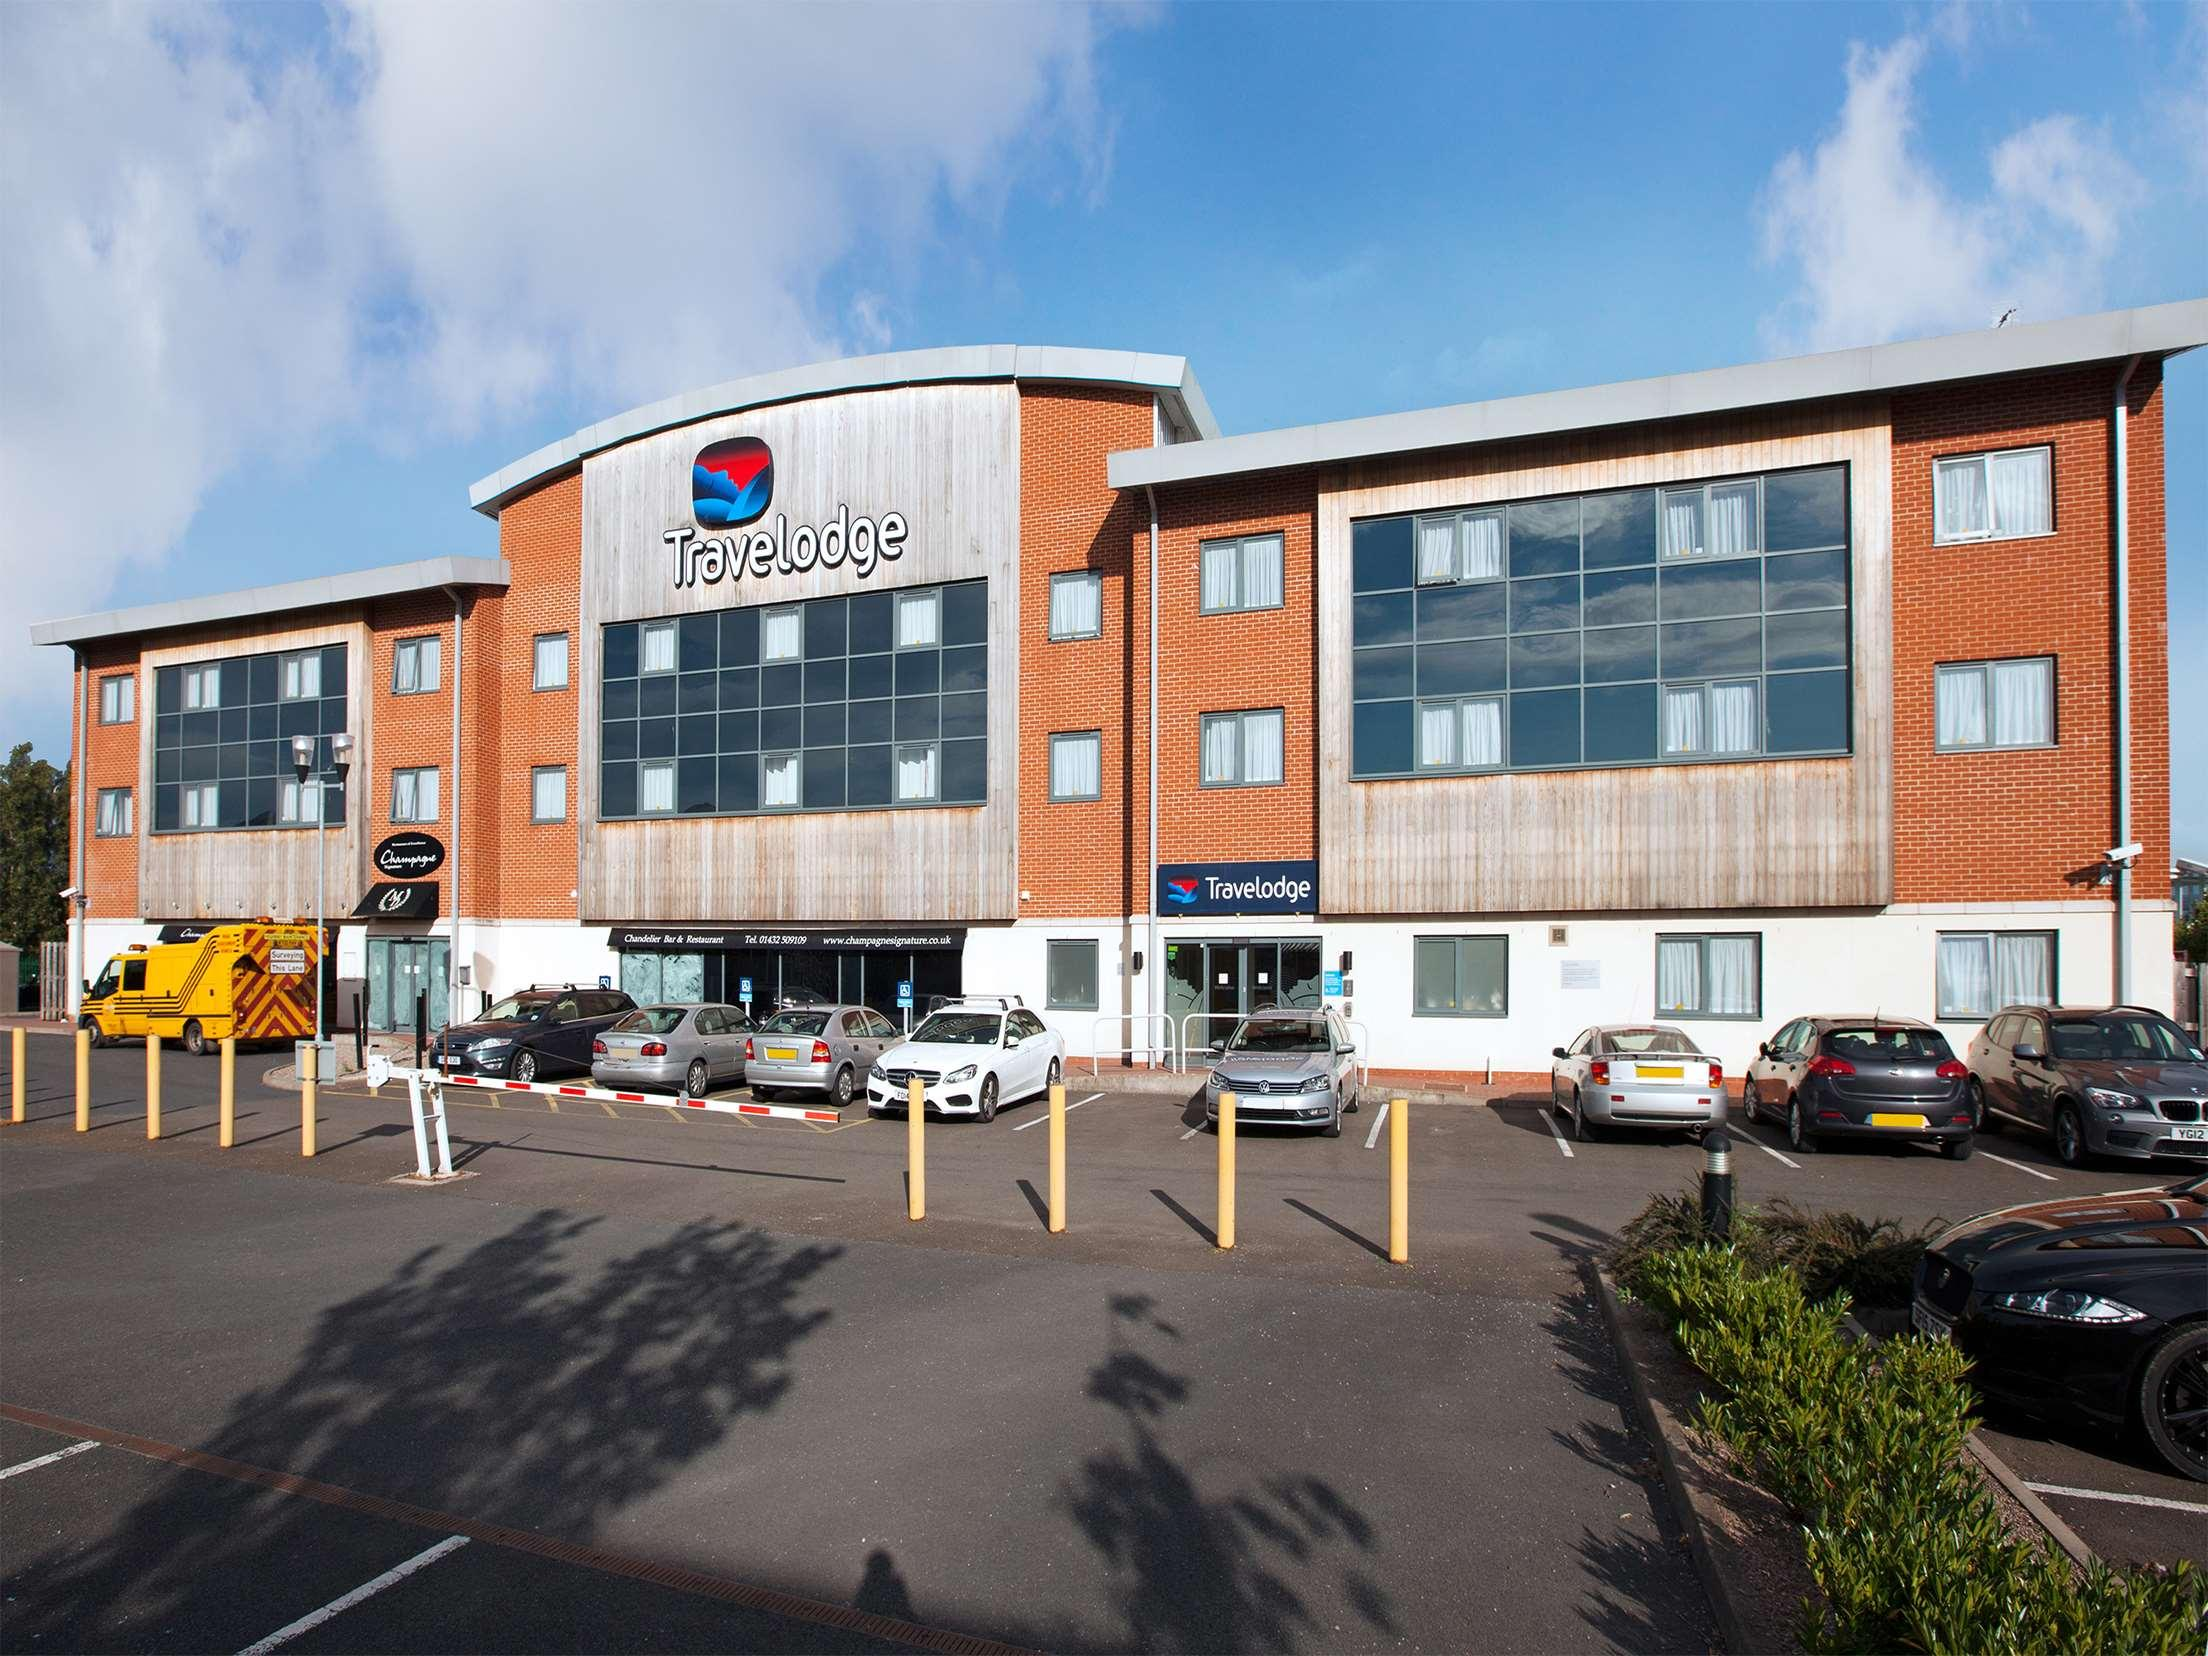 Travelodge Hereford